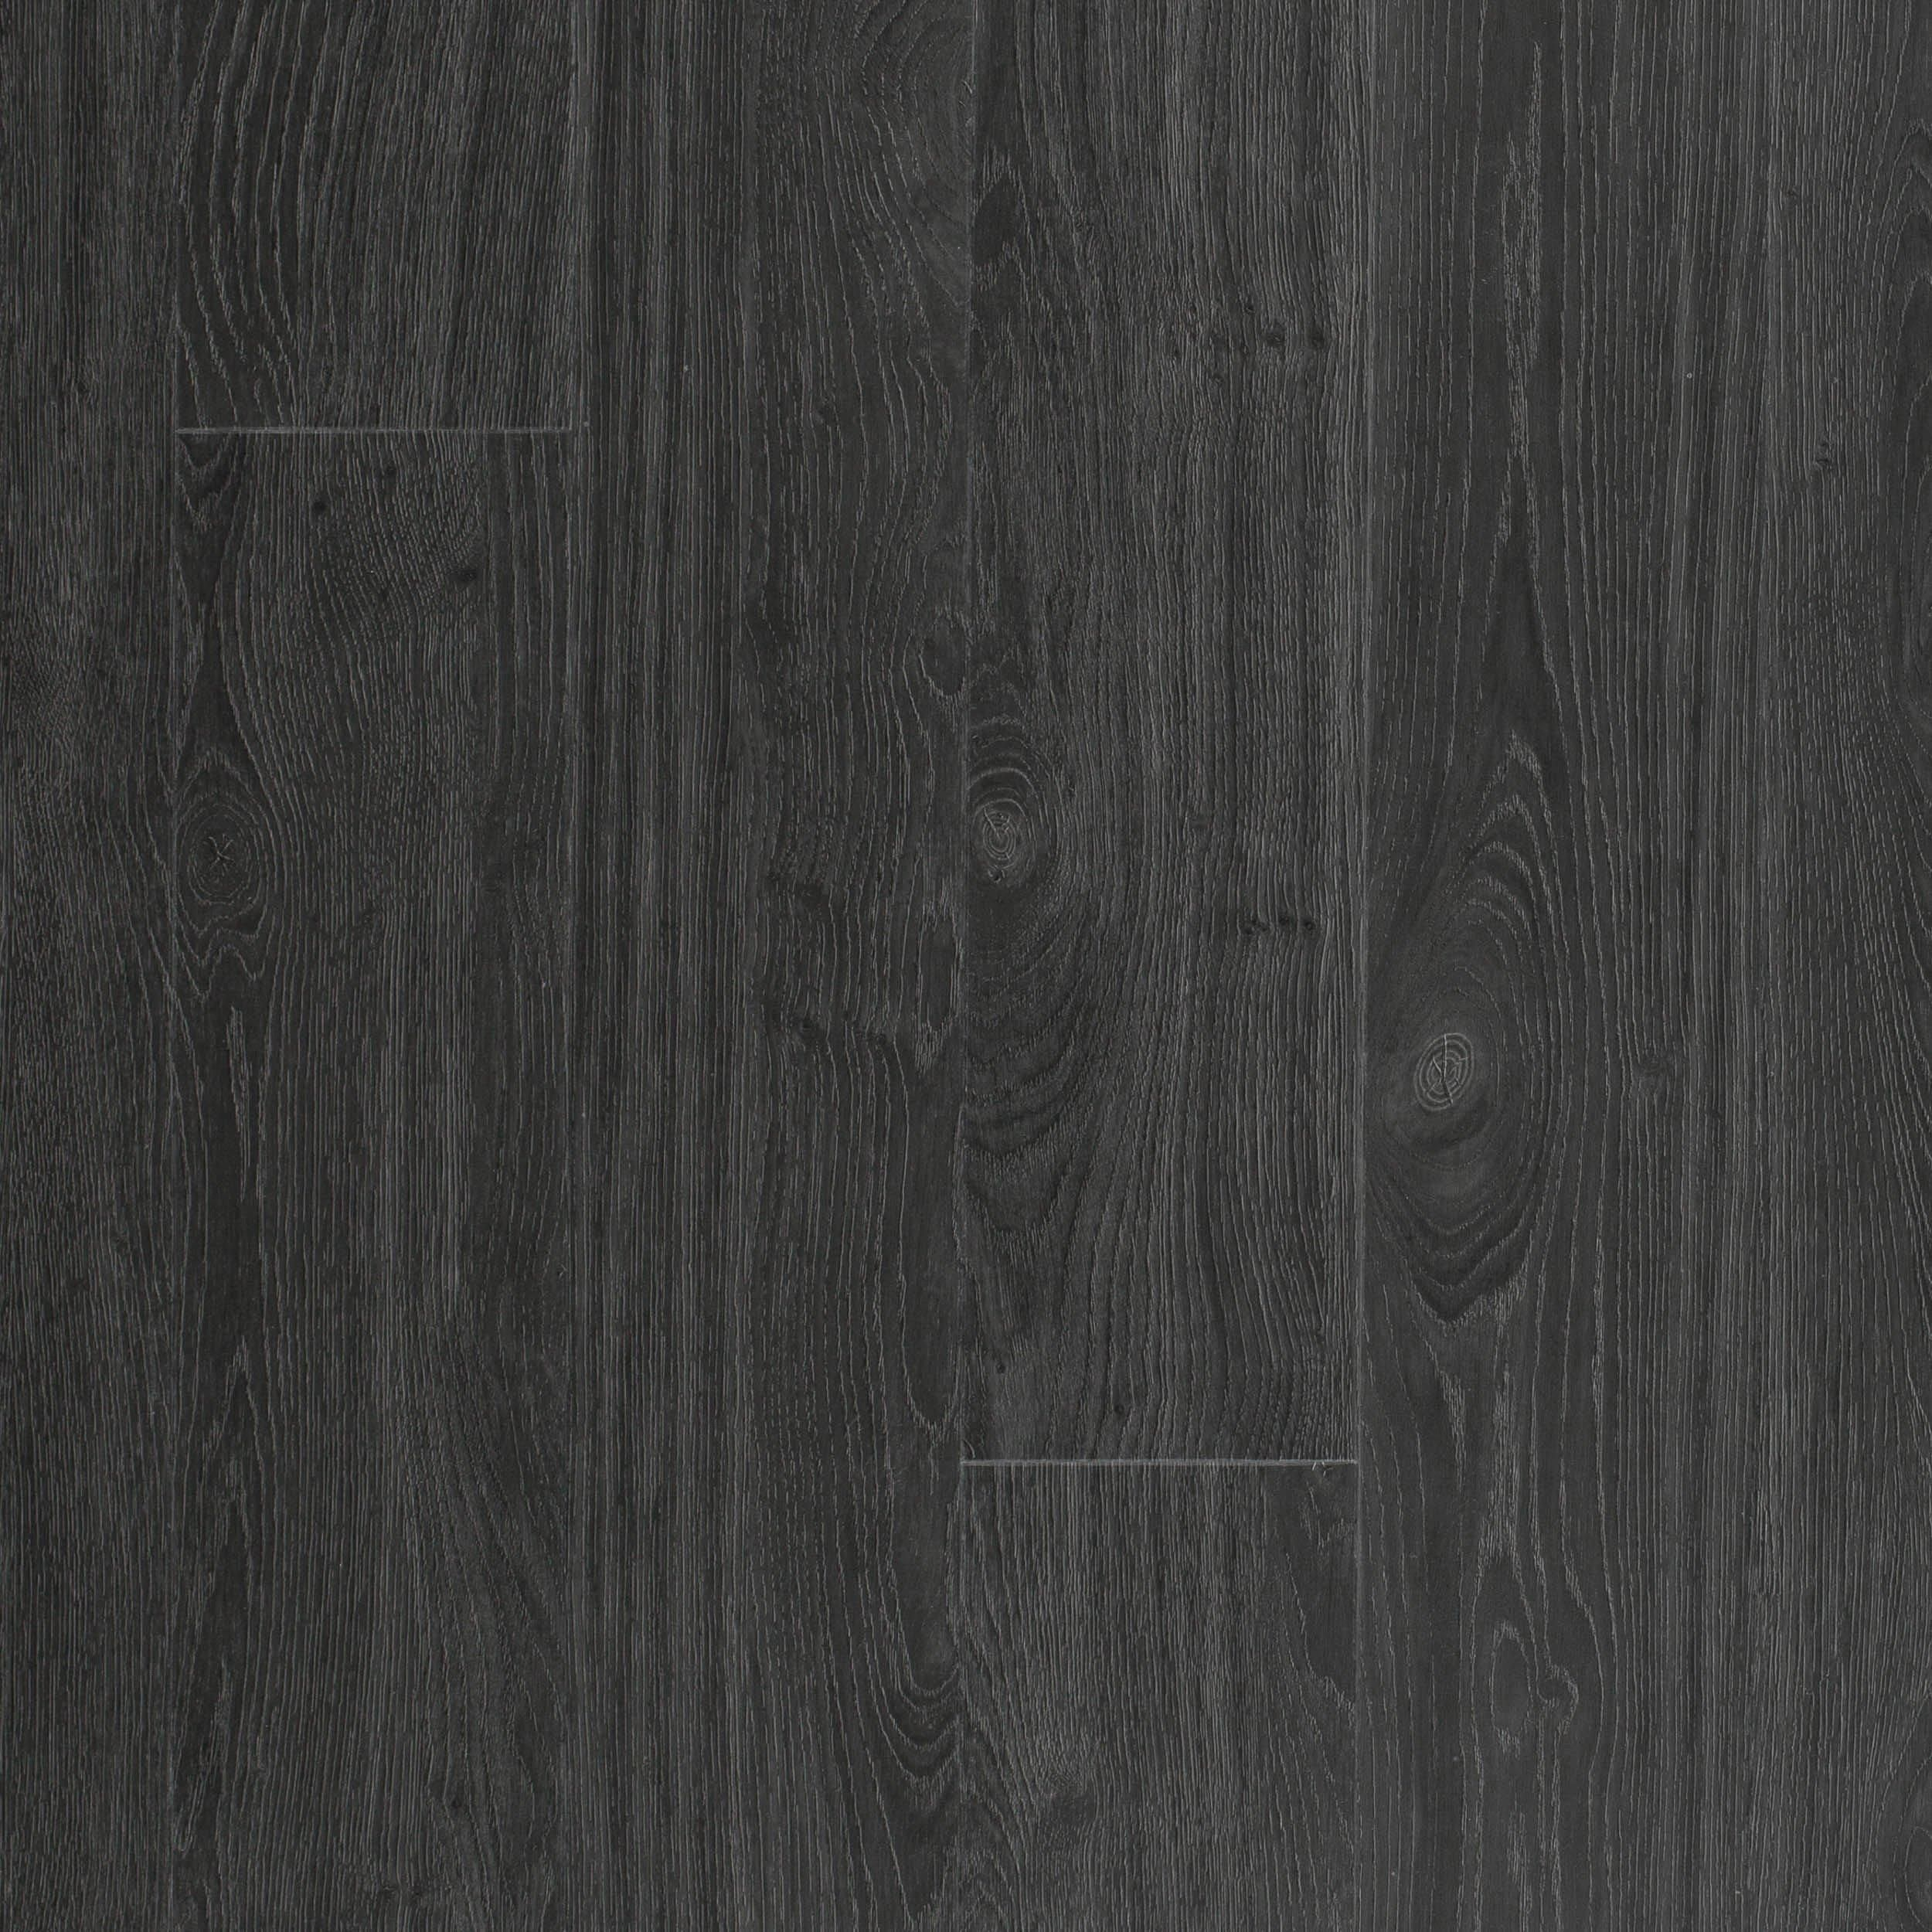 Ebony grove ash rigid core luxury vinyl plank foam back wood laminate flooring basement